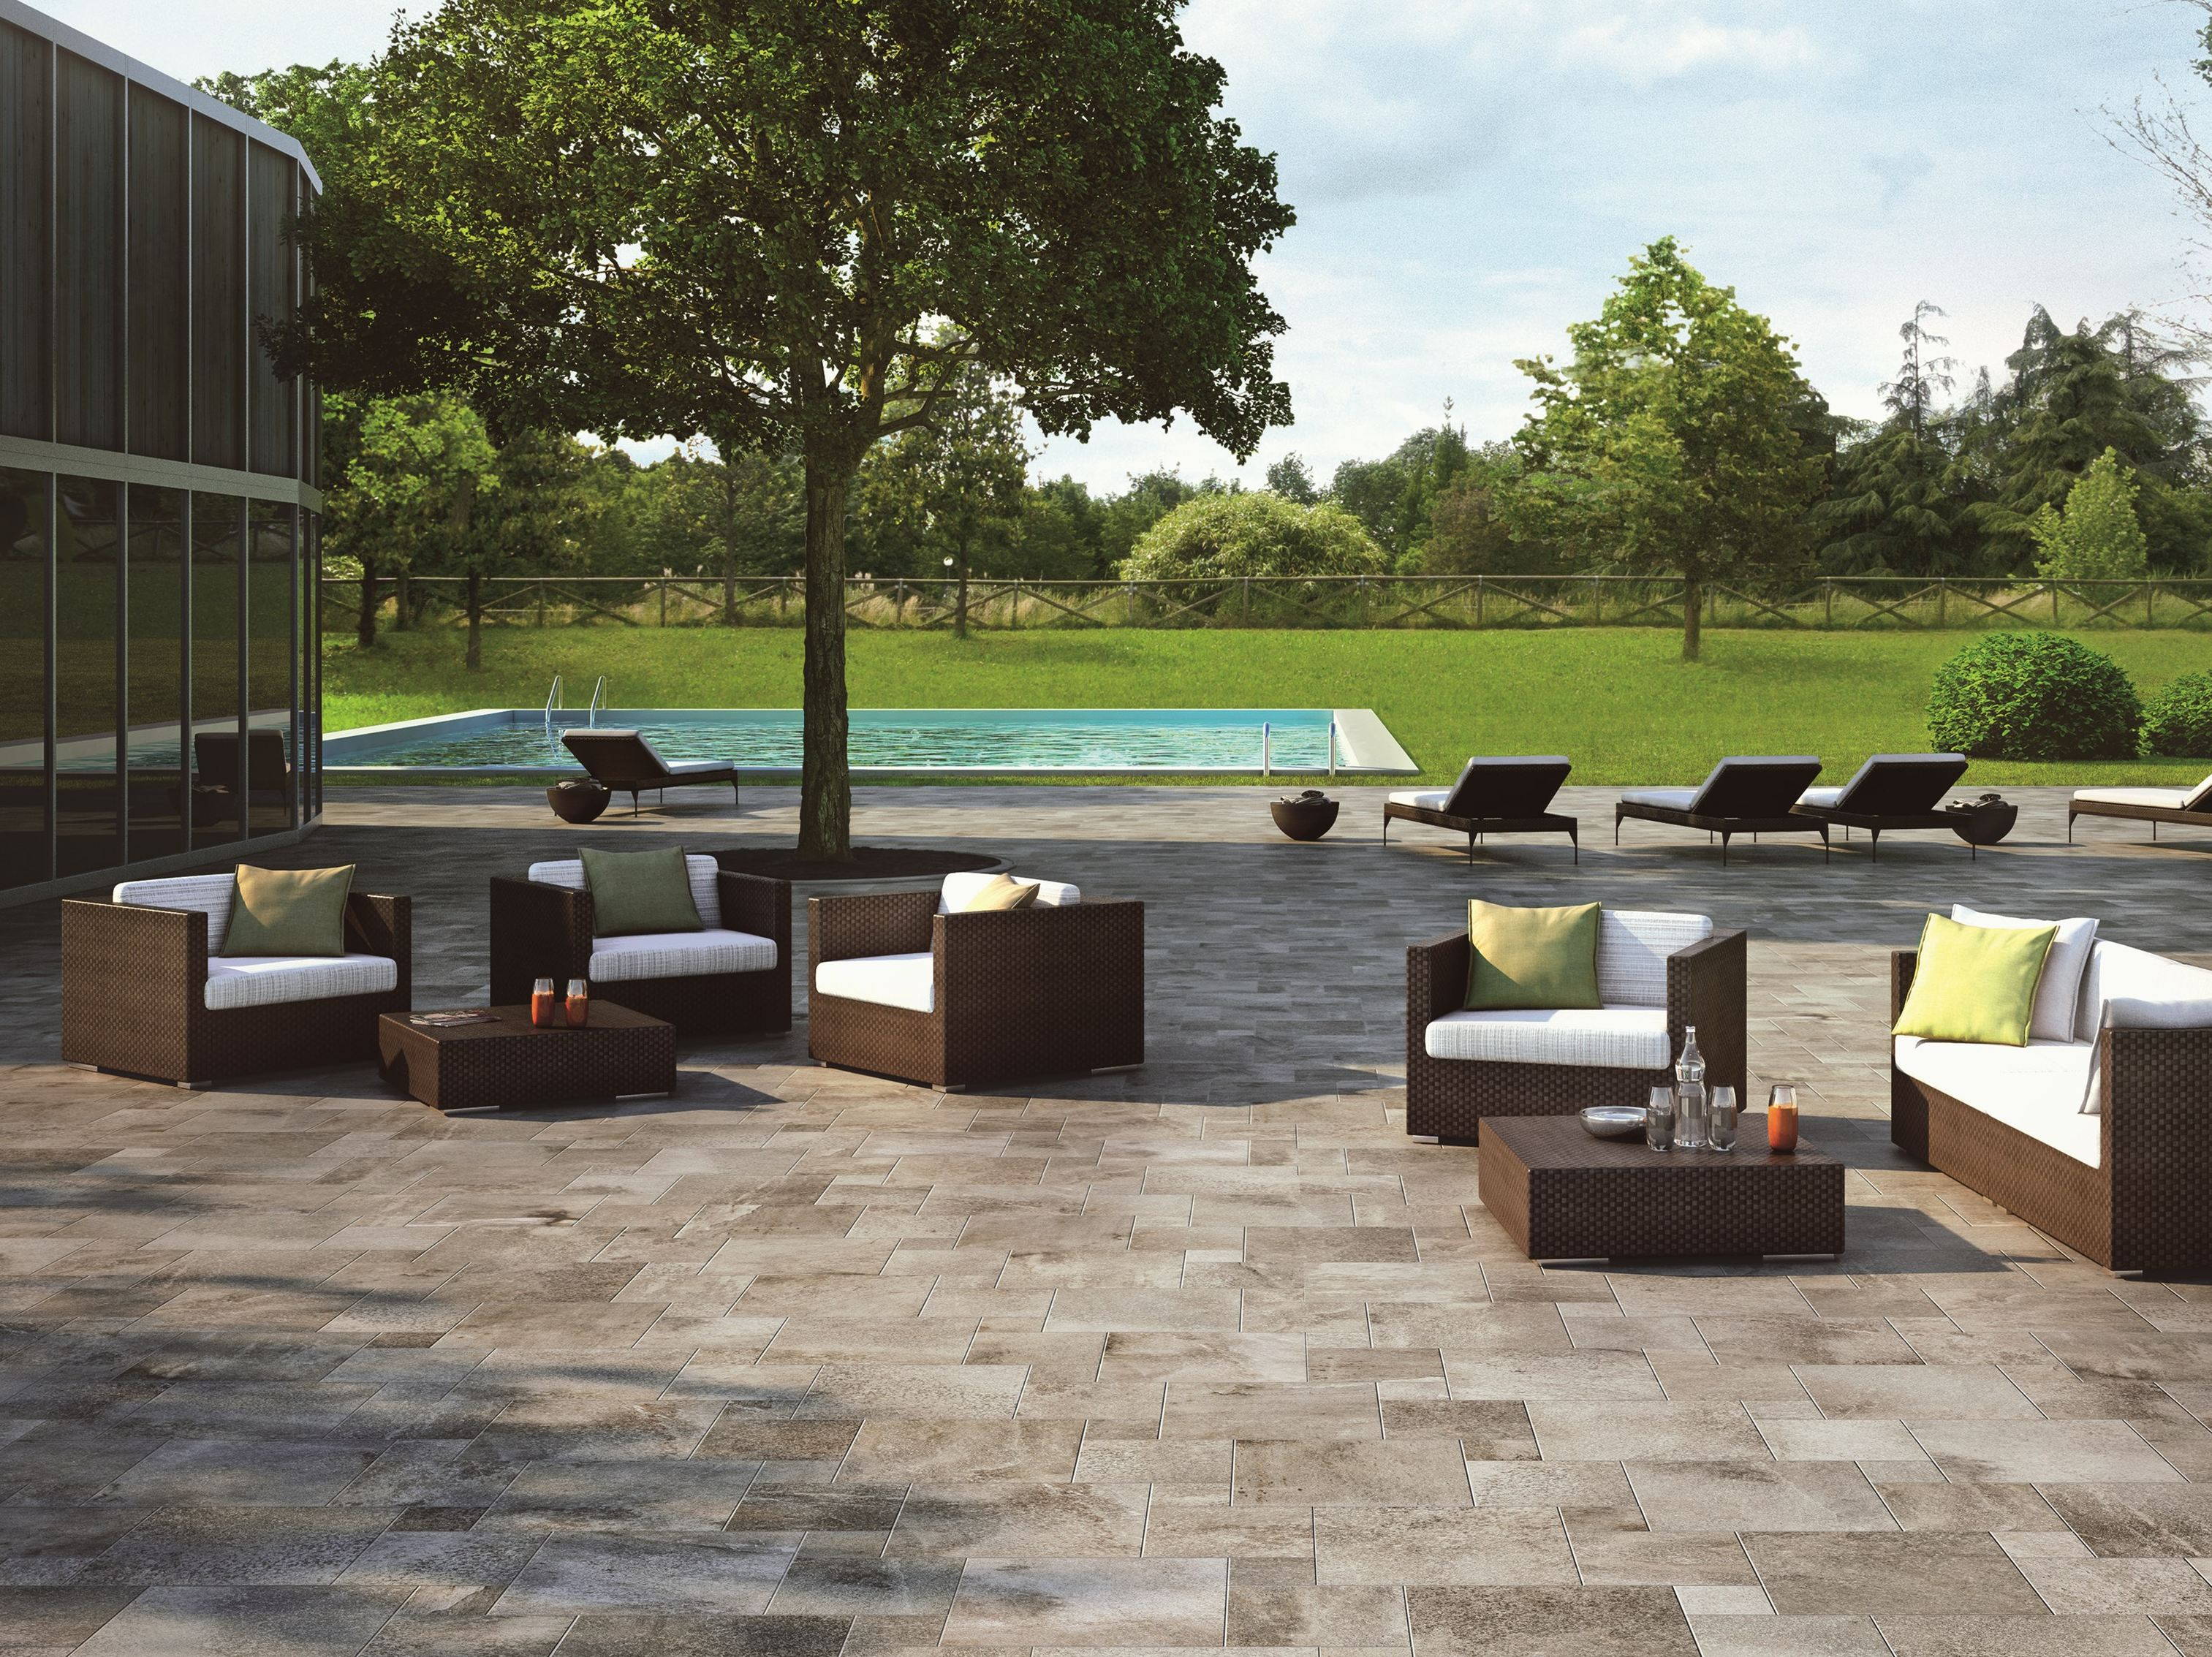 ragno carrelage woodplace ceramic tiles ragno with ragno. Black Bedroom Furniture Sets. Home Design Ideas